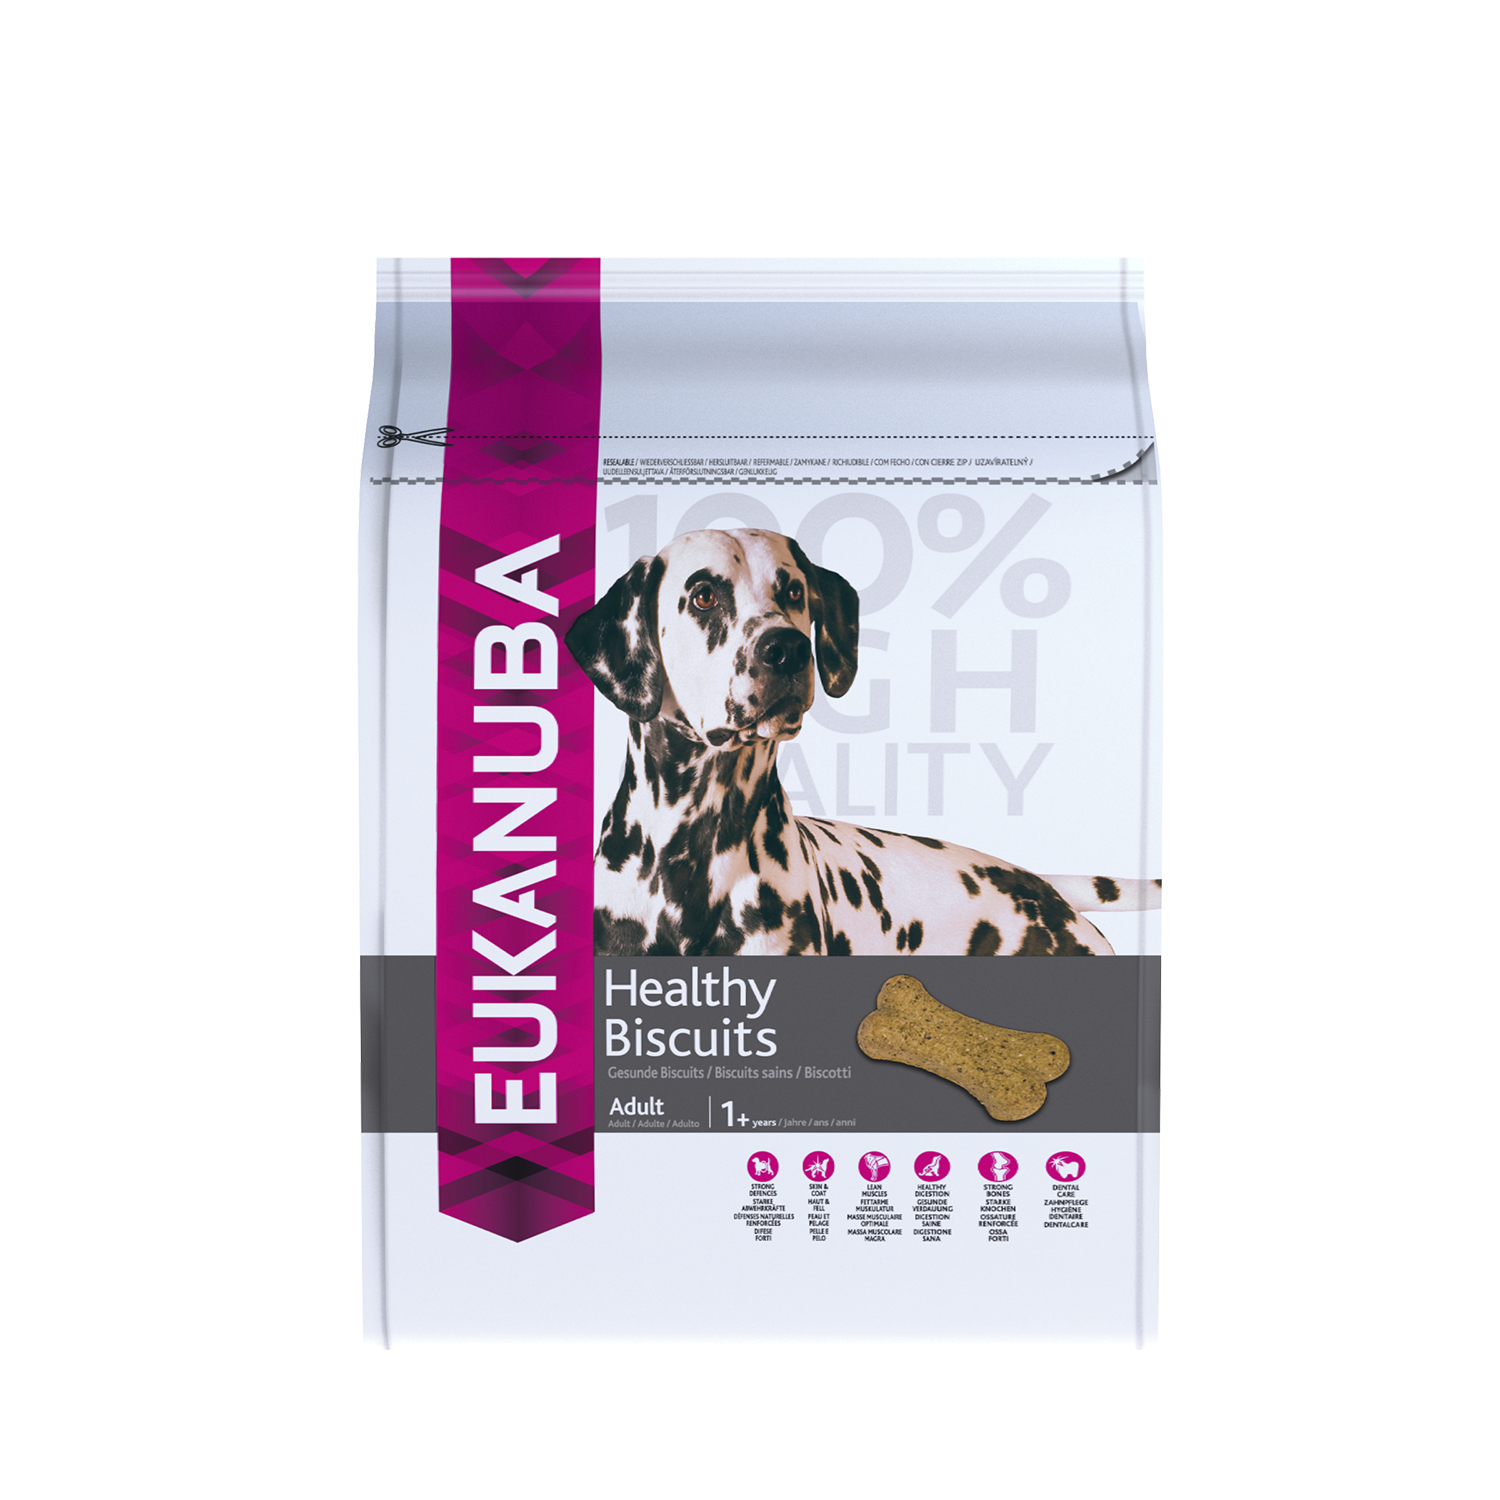 Eukanuba Adult Dog Treats Healthy Biscuits For All Breeds RTP FOP